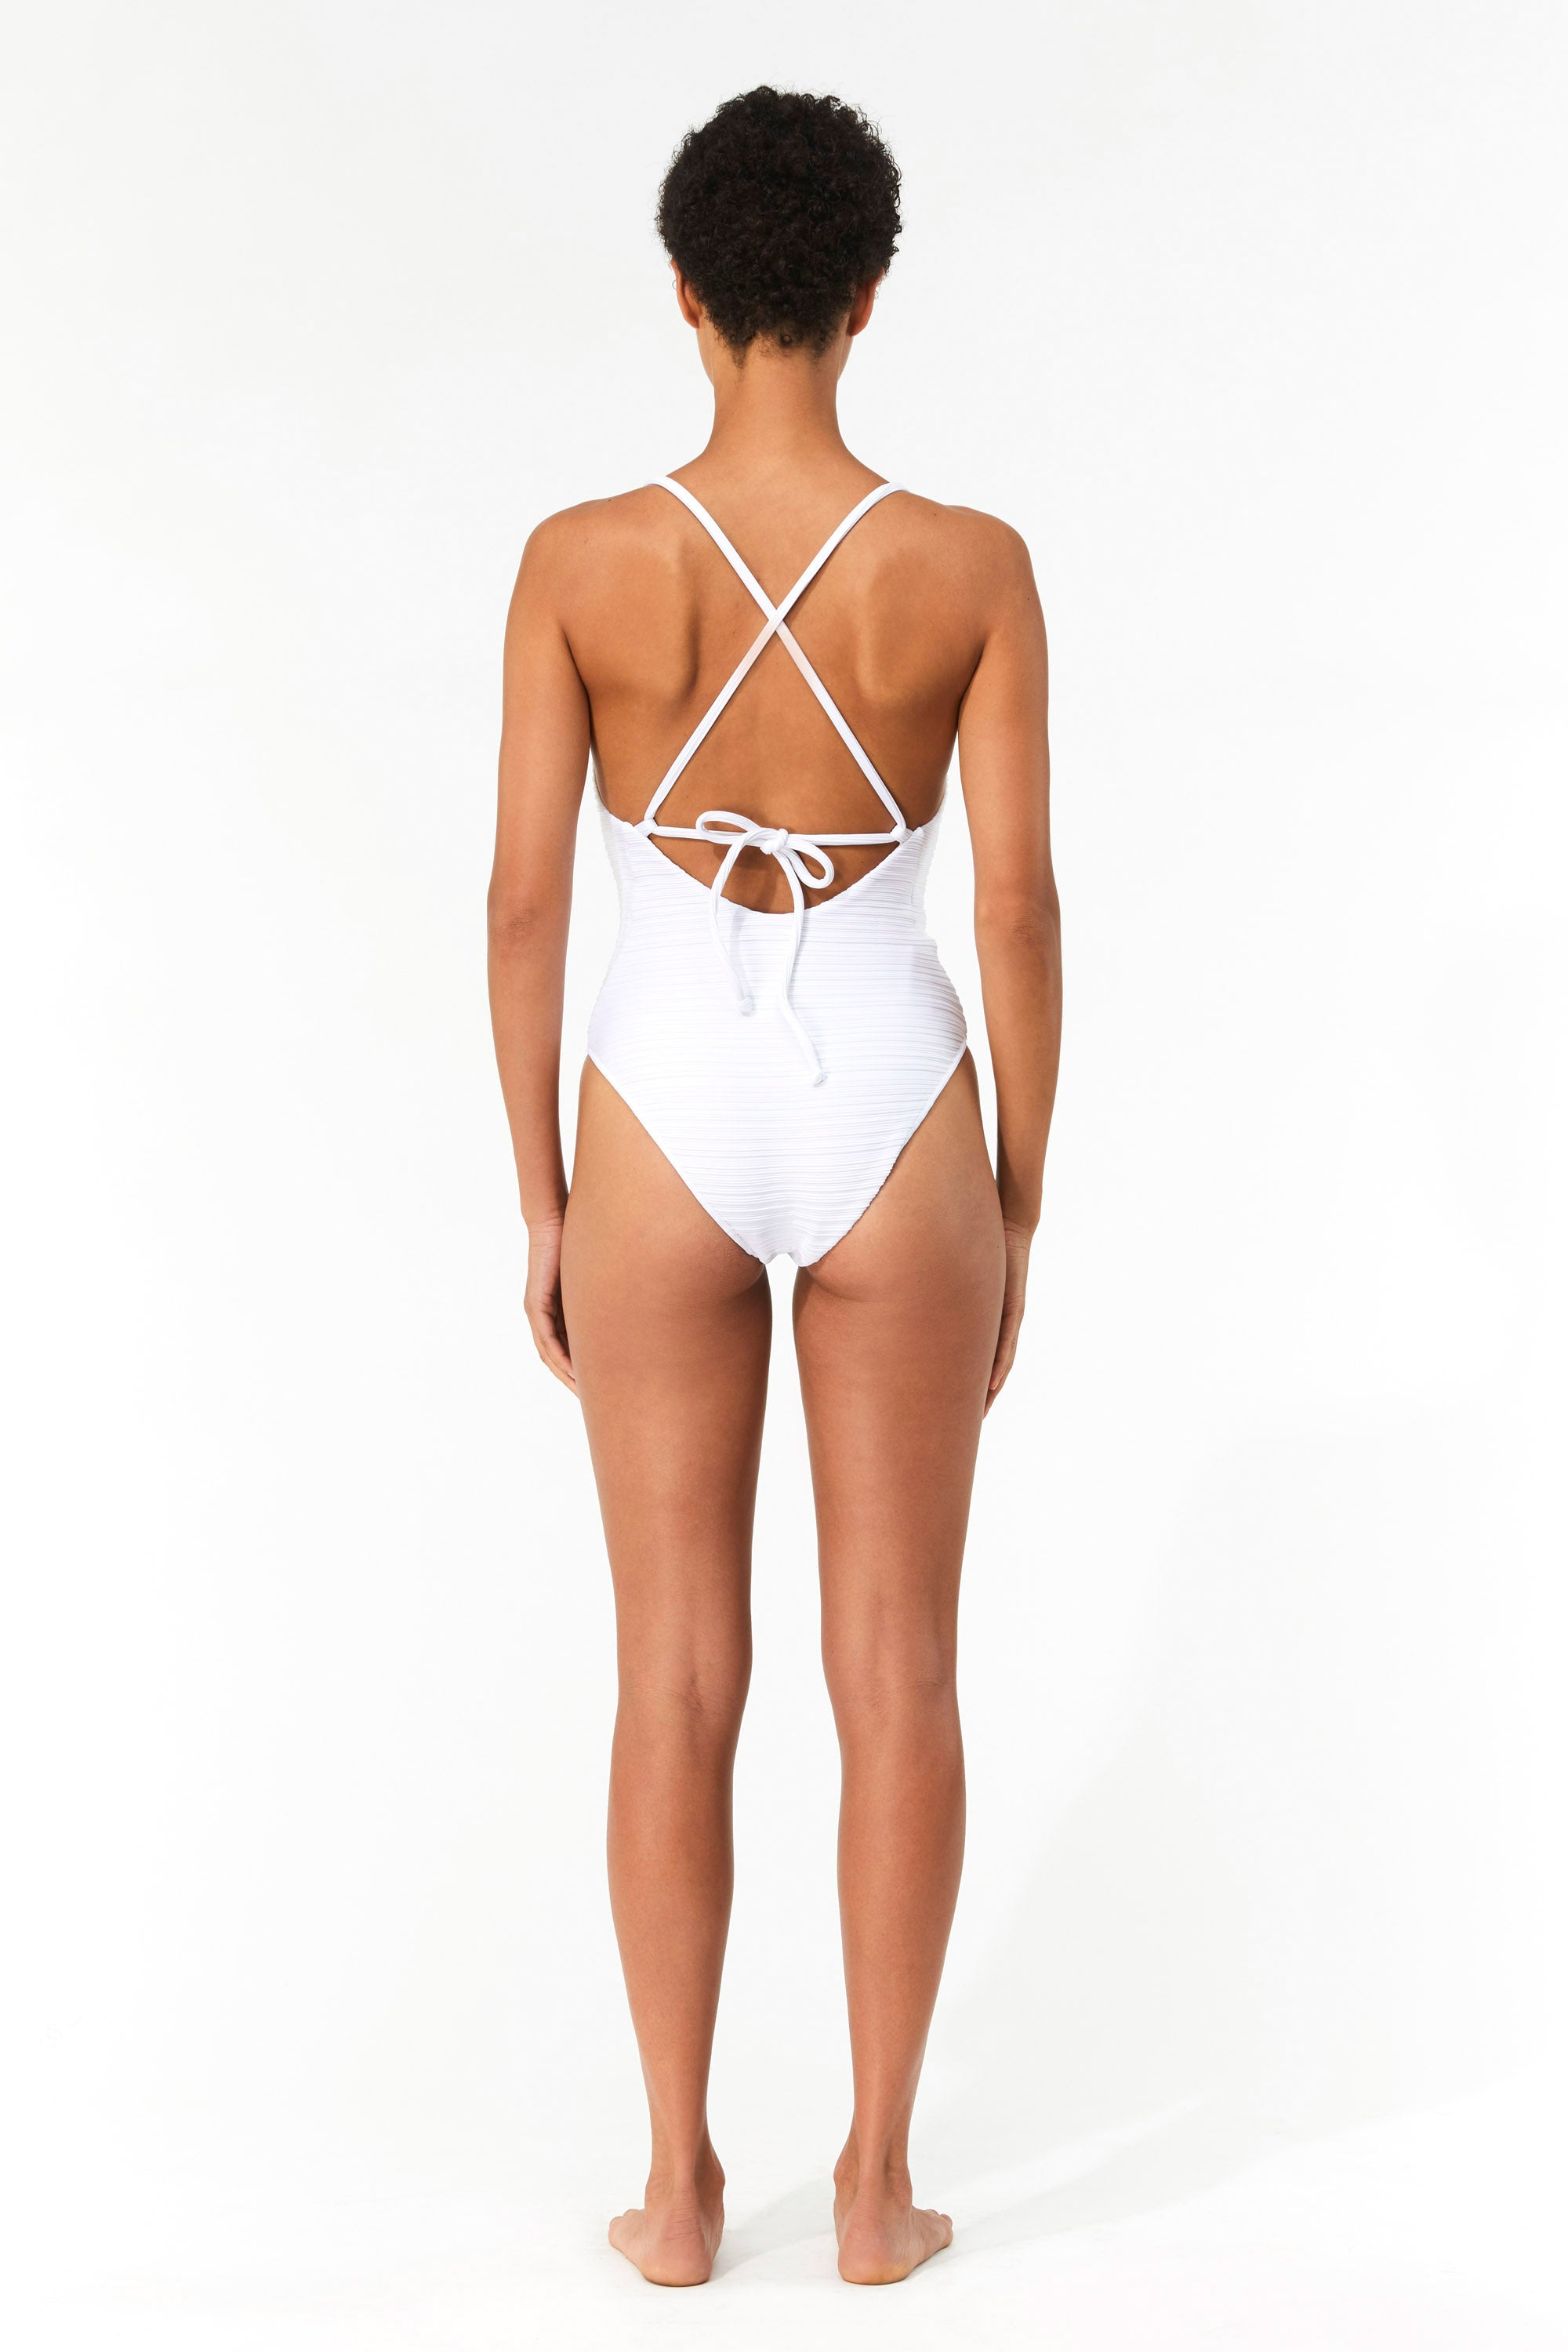 Mara Hoffman White Emma One Piece Bathing Suit in Repreve (back)